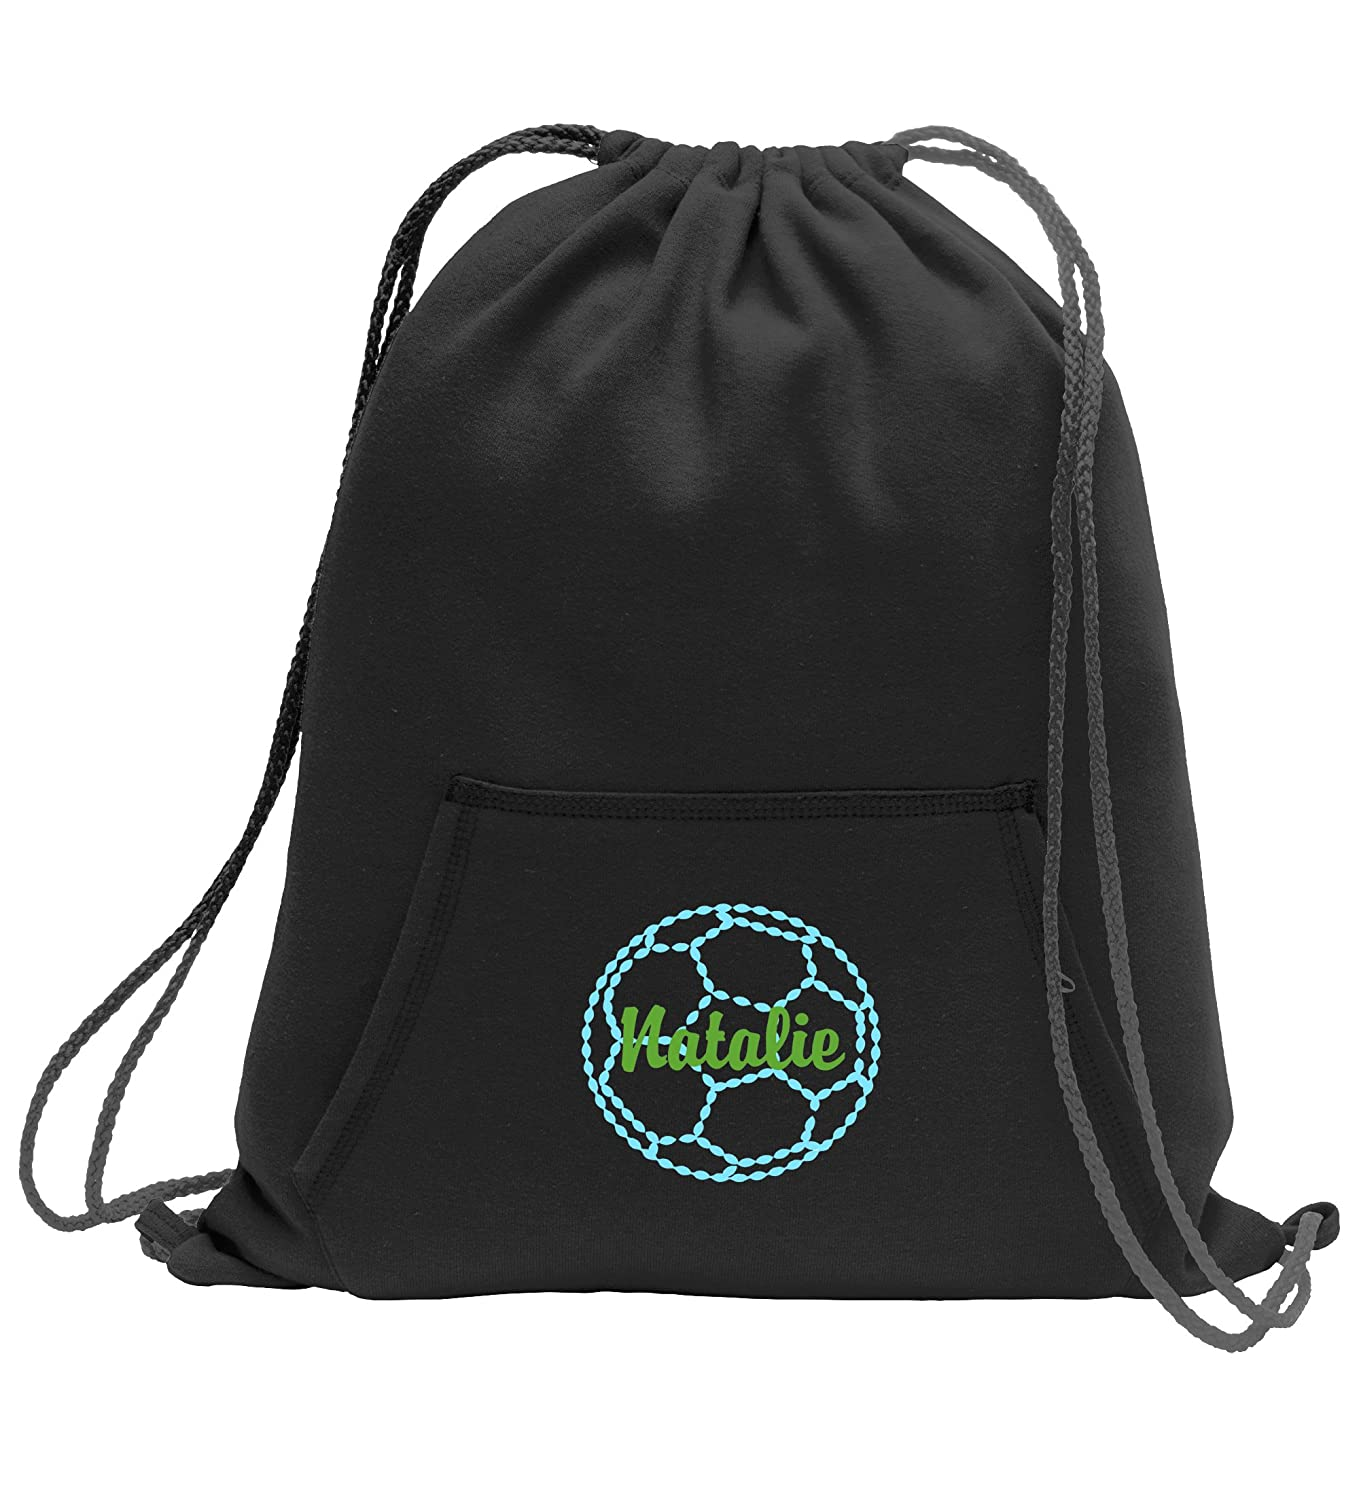 Personalizedサッカー – スウェットシャツCinch Bag with Front Pocket B01LXM1NY1 ジェットブラック ジェットブラック